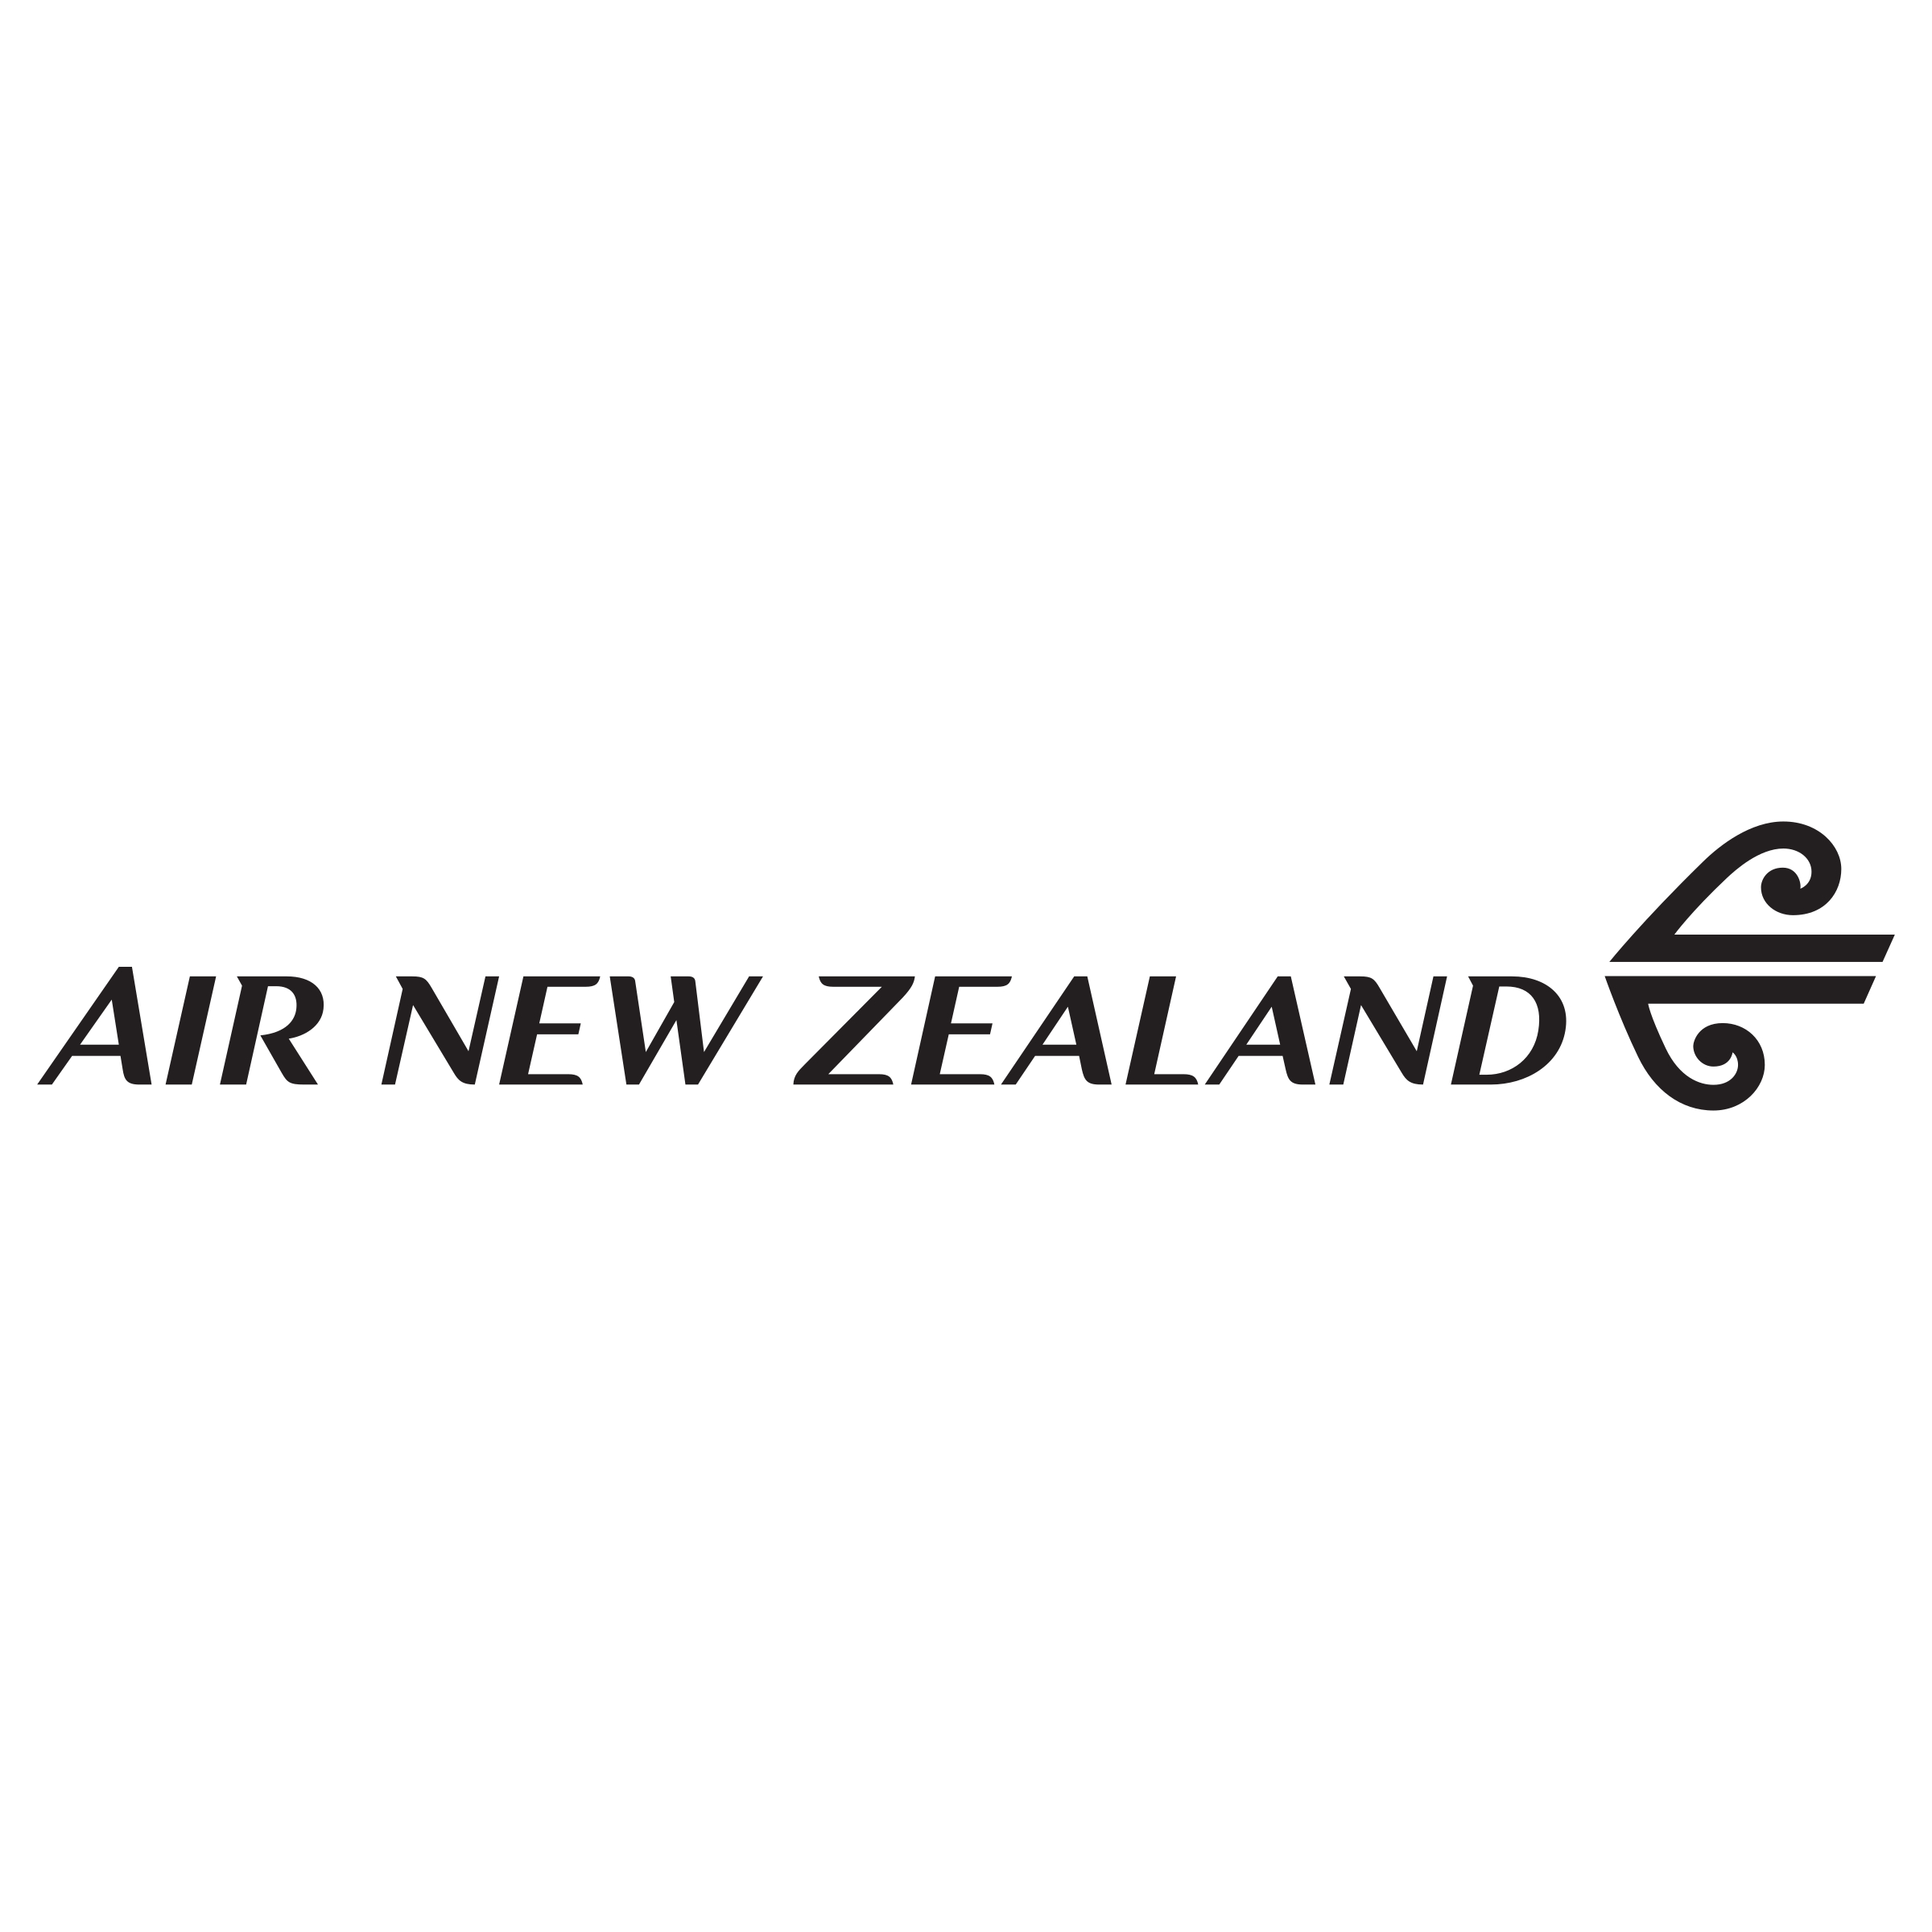 https://freightquip.com/production/wp-content/uploads/2020/07/Air_New_Zealand-Logo.jpg